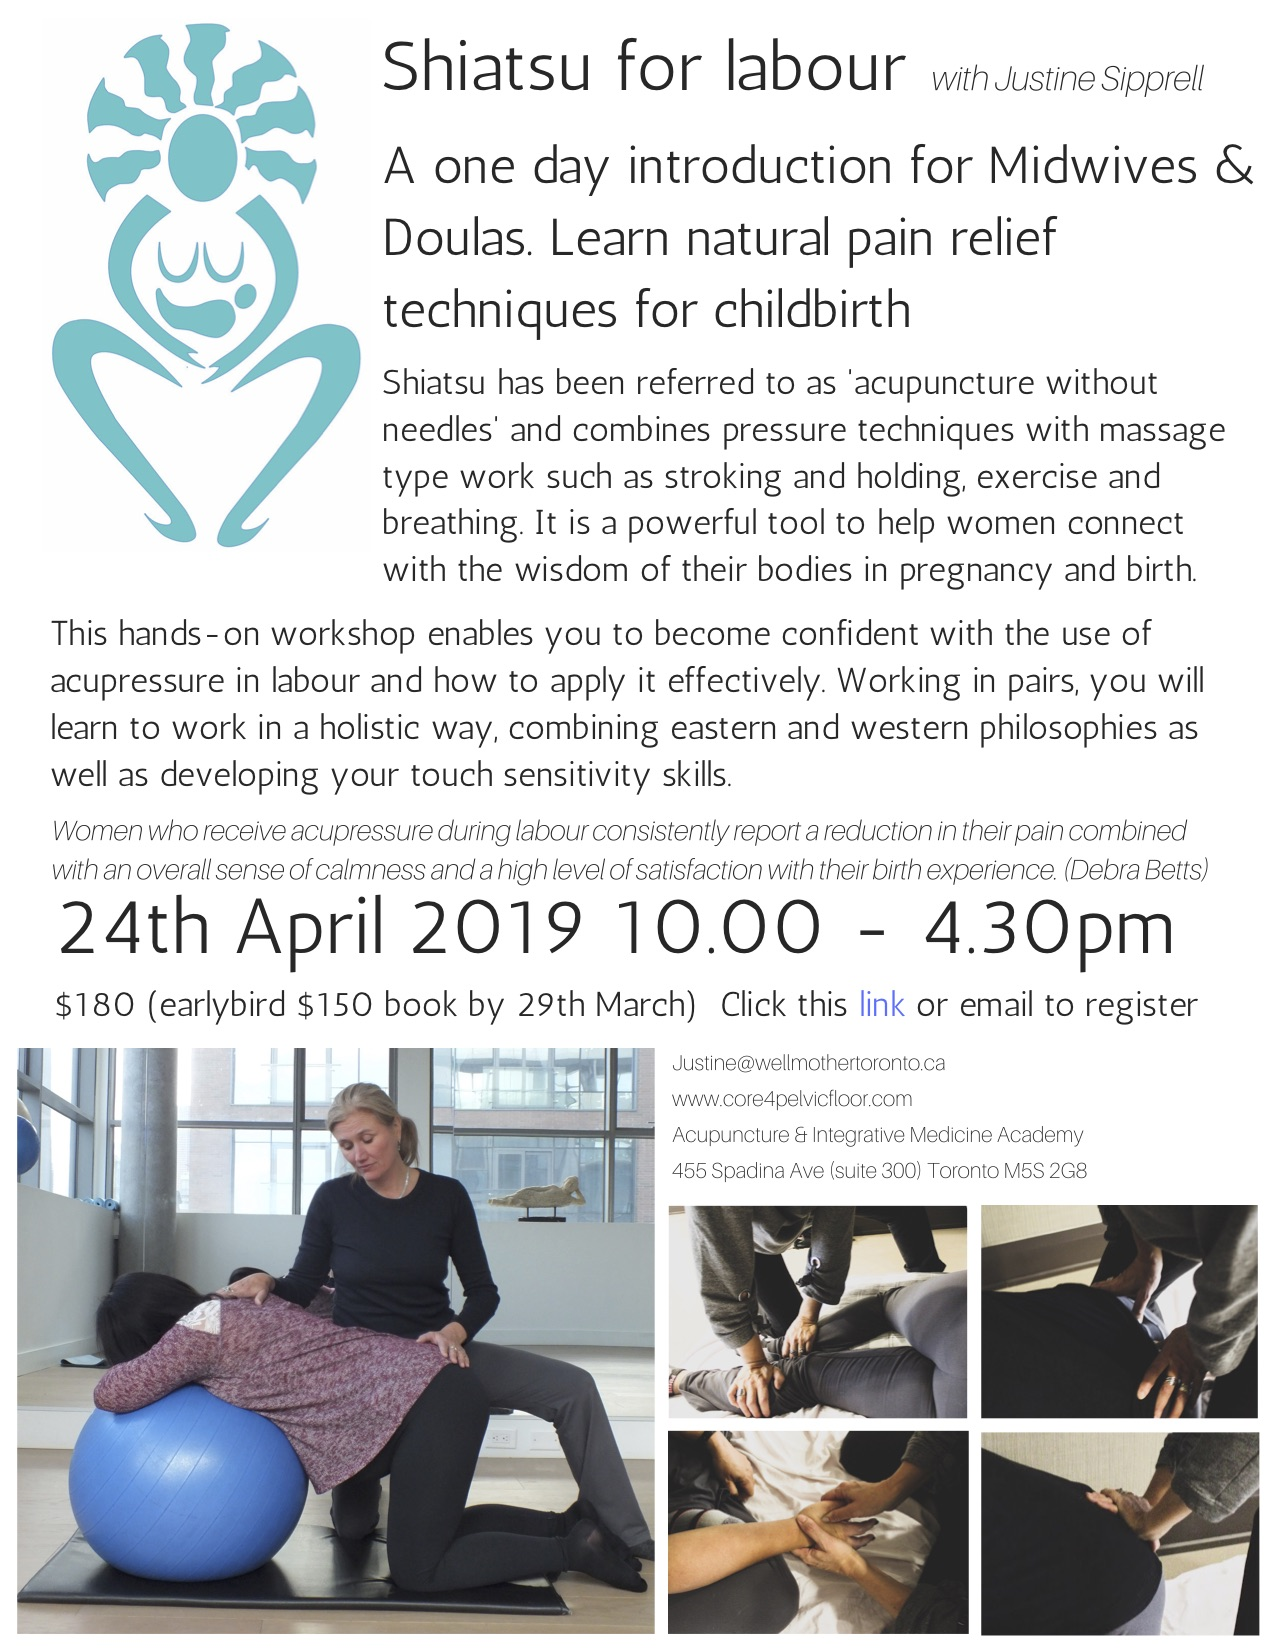 CANADA Shiatsu for labour April 2019.jpg